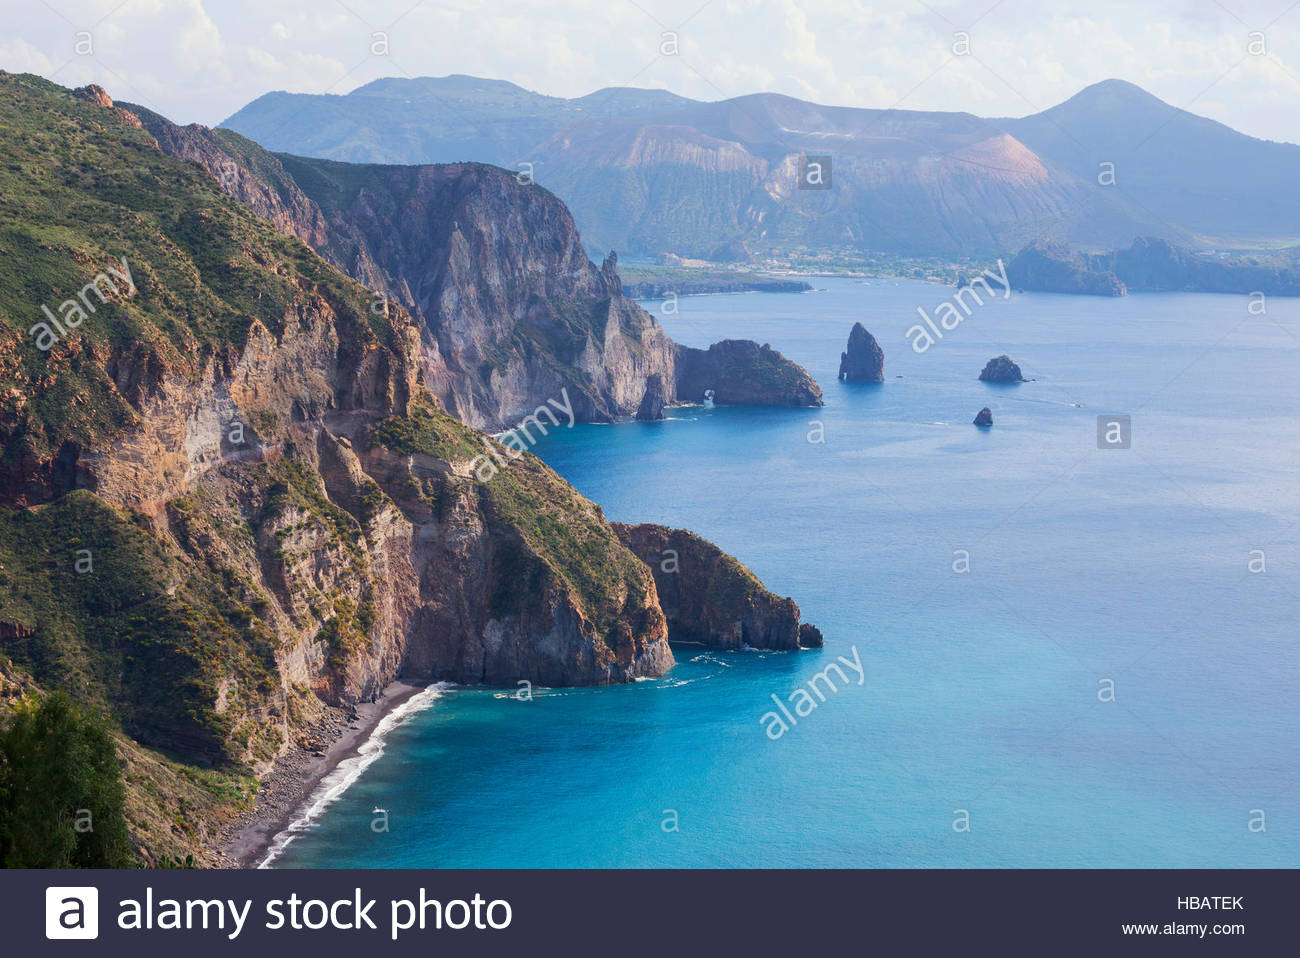 View of Lipari and Vulcano island from Belvedere Quattrocchi, Sicily, Italy - Stock Image